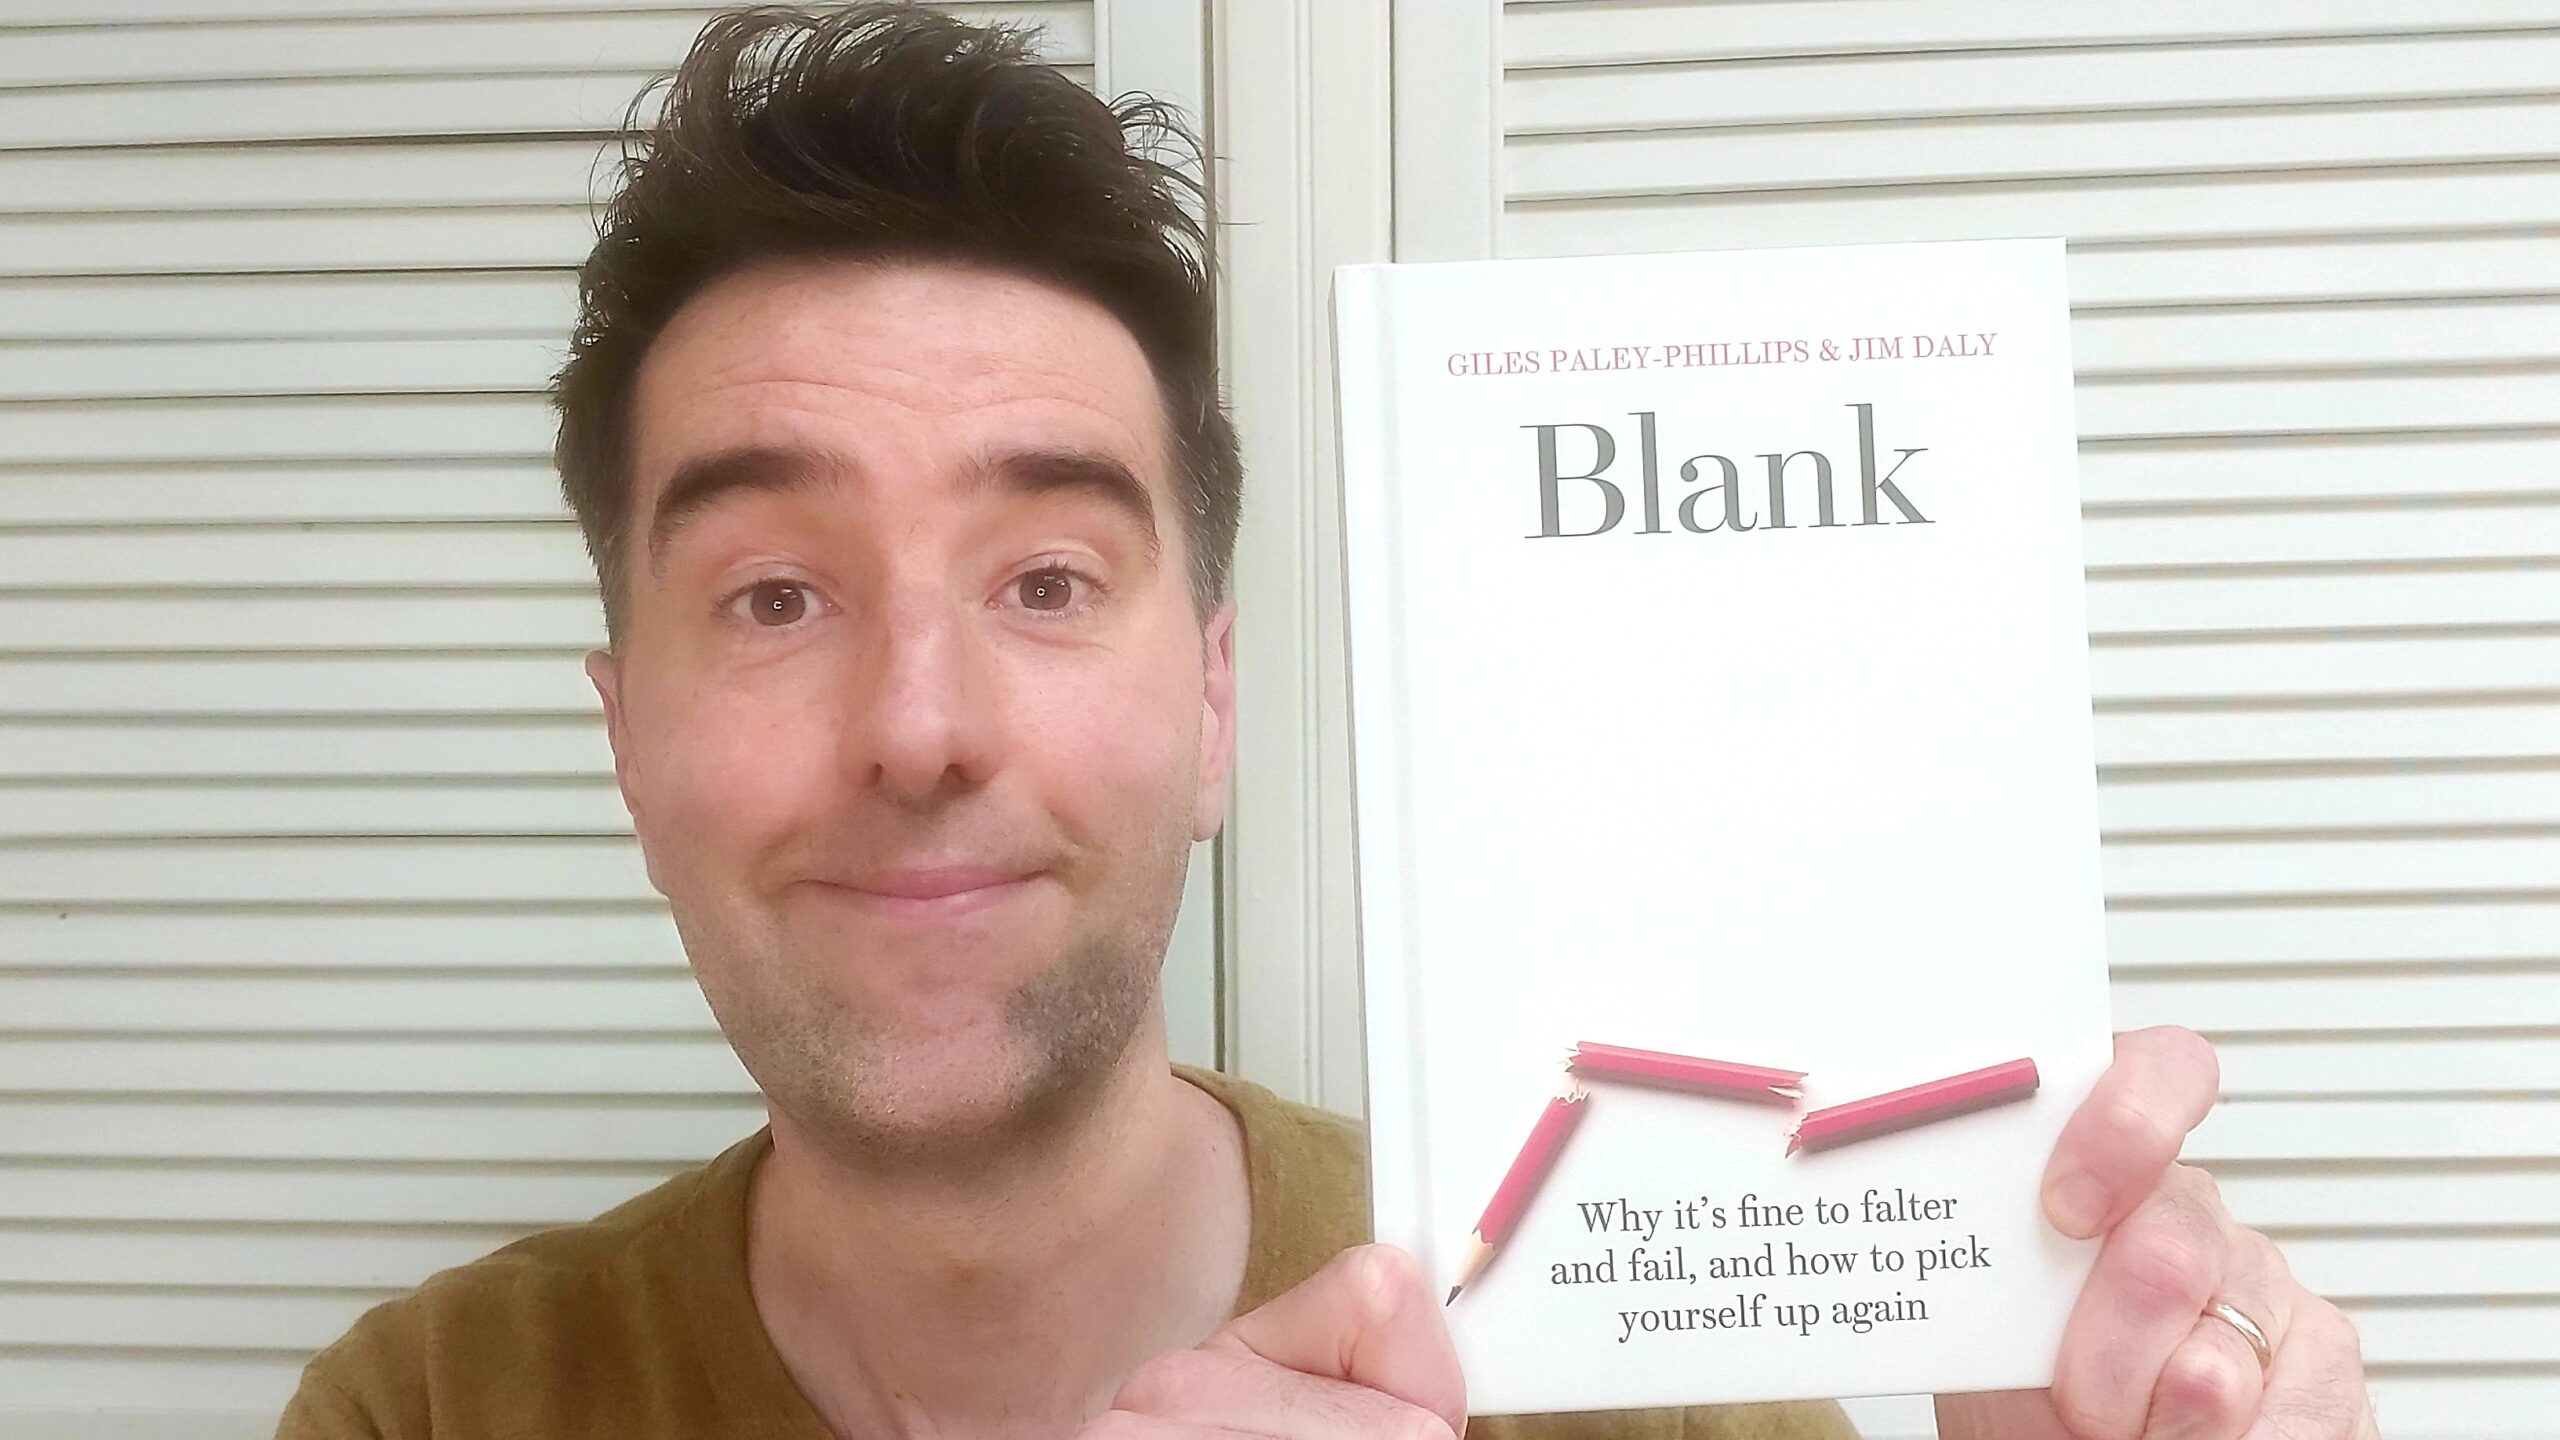 BLANK Book by Jim Daly and Giles Paley-Phillips